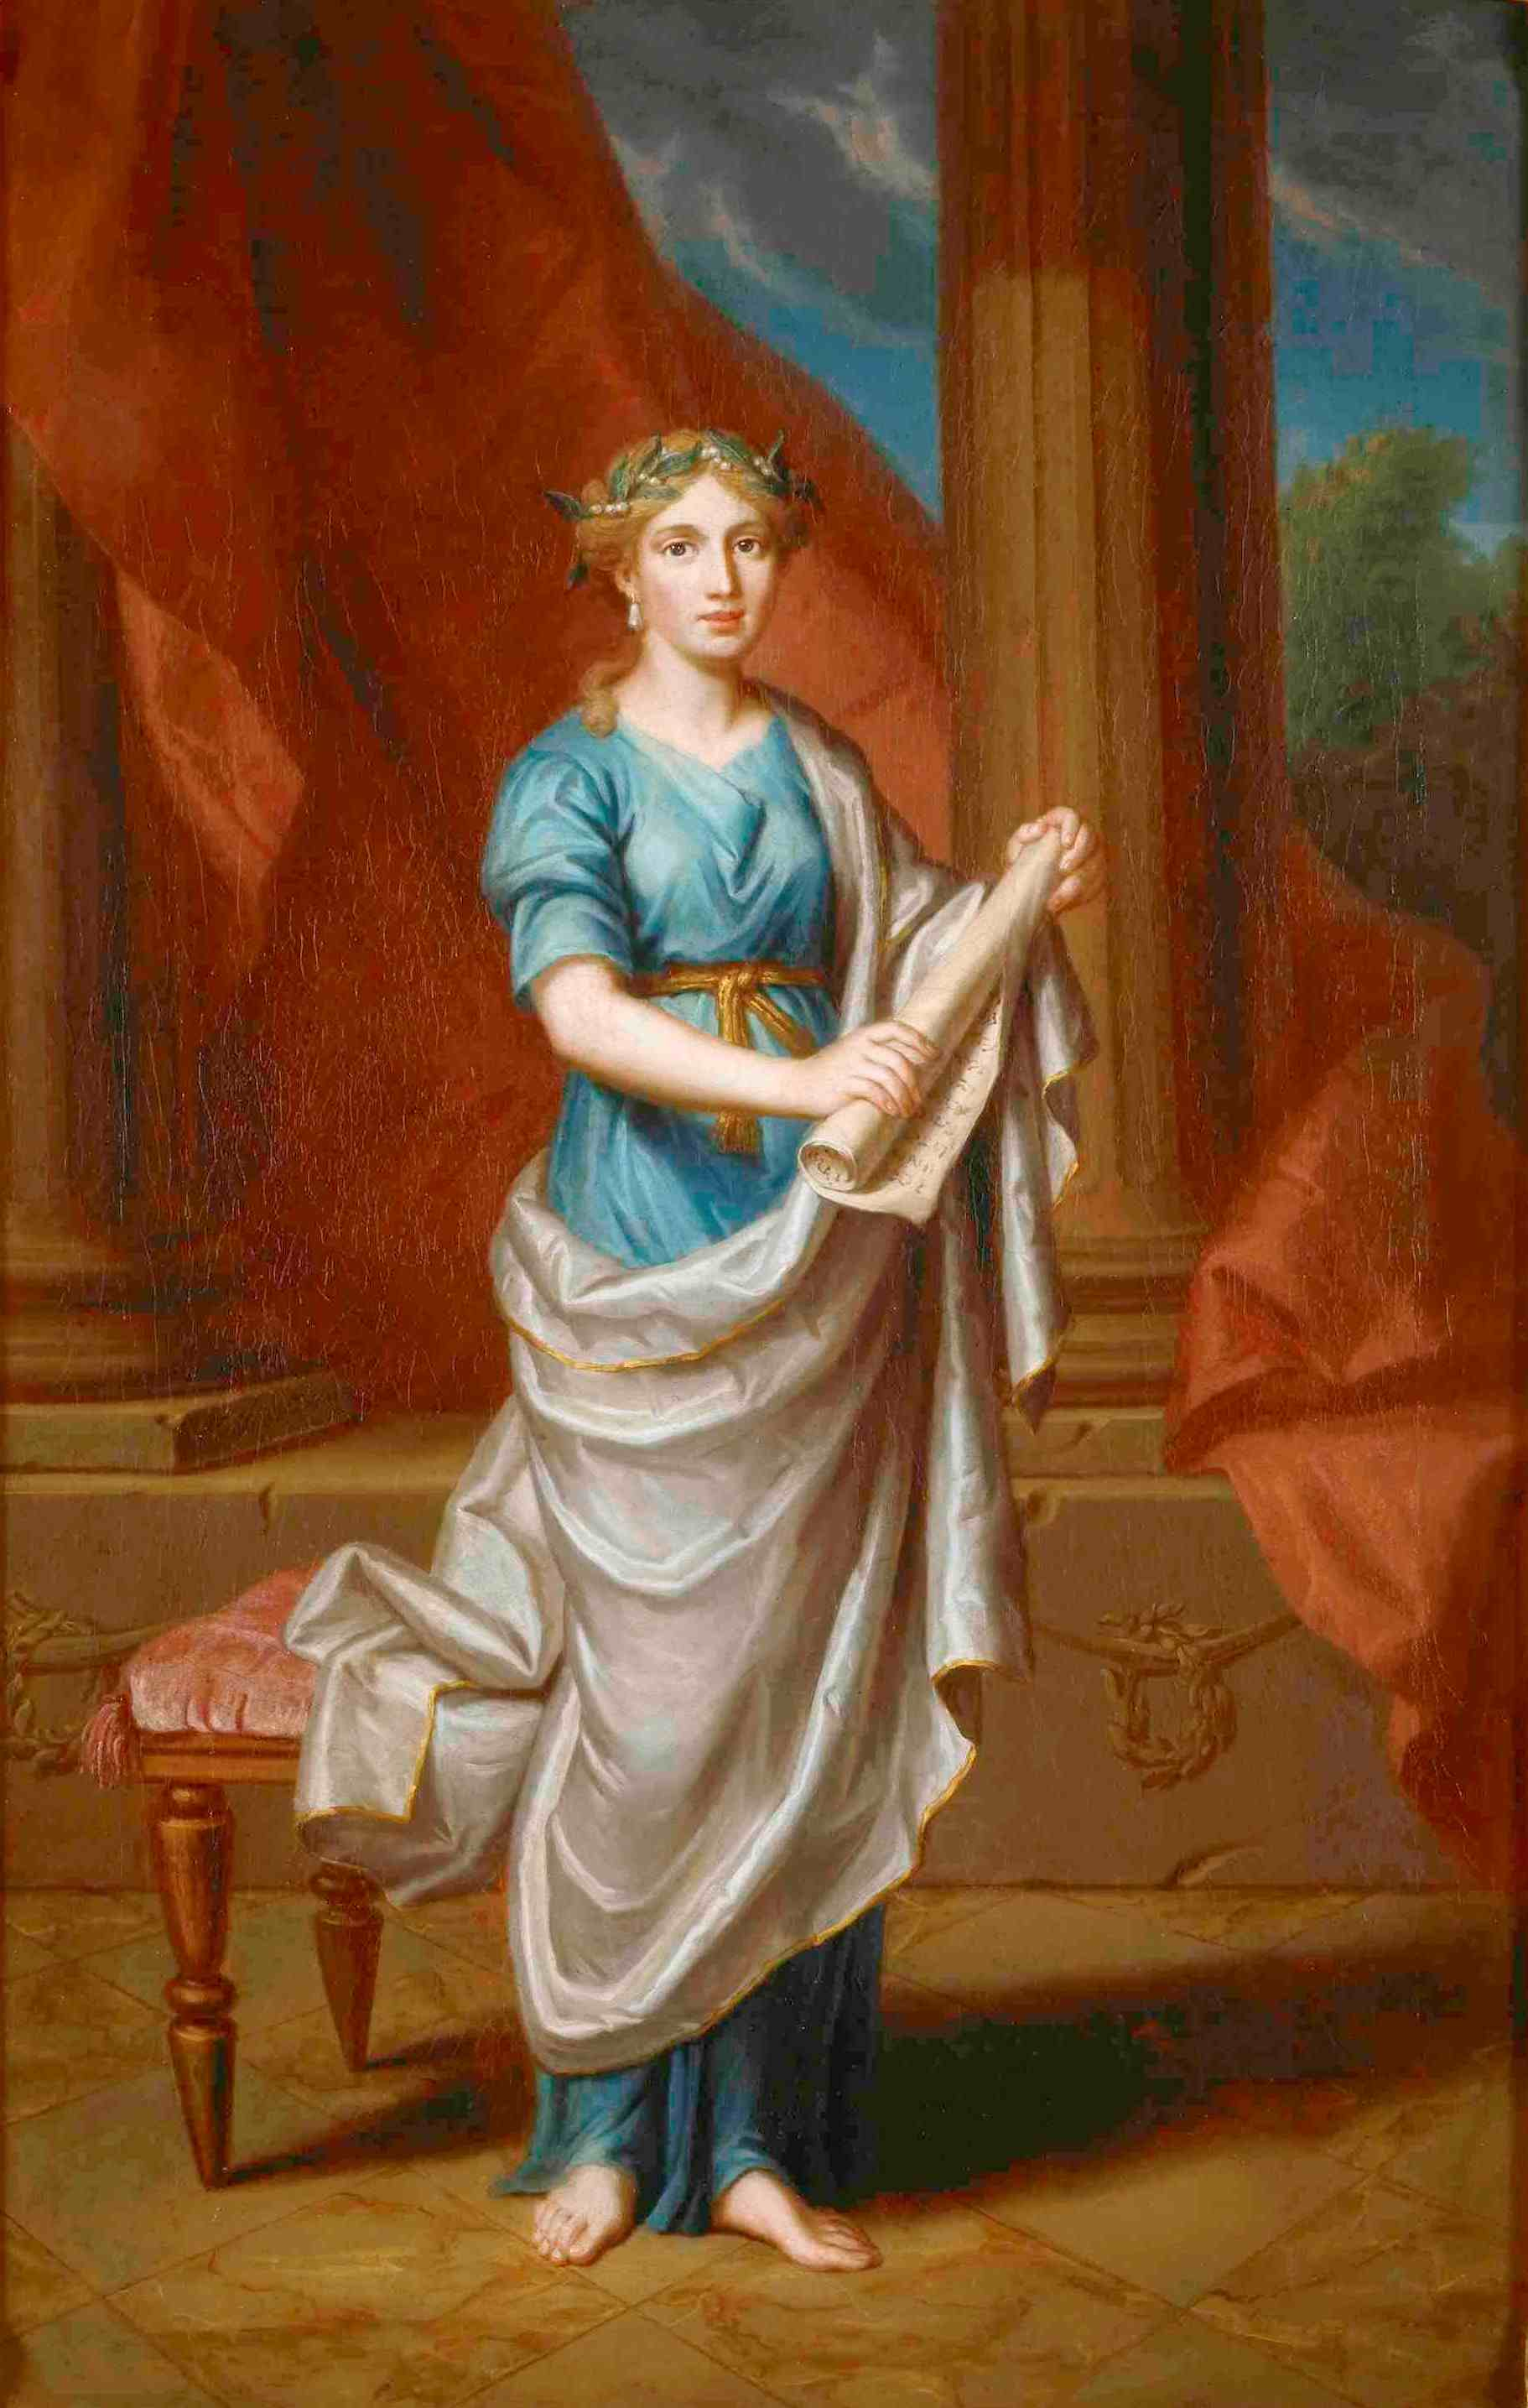 urania girls The name urania is used as a first name for girls it is coined after the name of the greek goddess of astronomy it is said that goddess urania can foretell the future by studying the arrangement of stars.